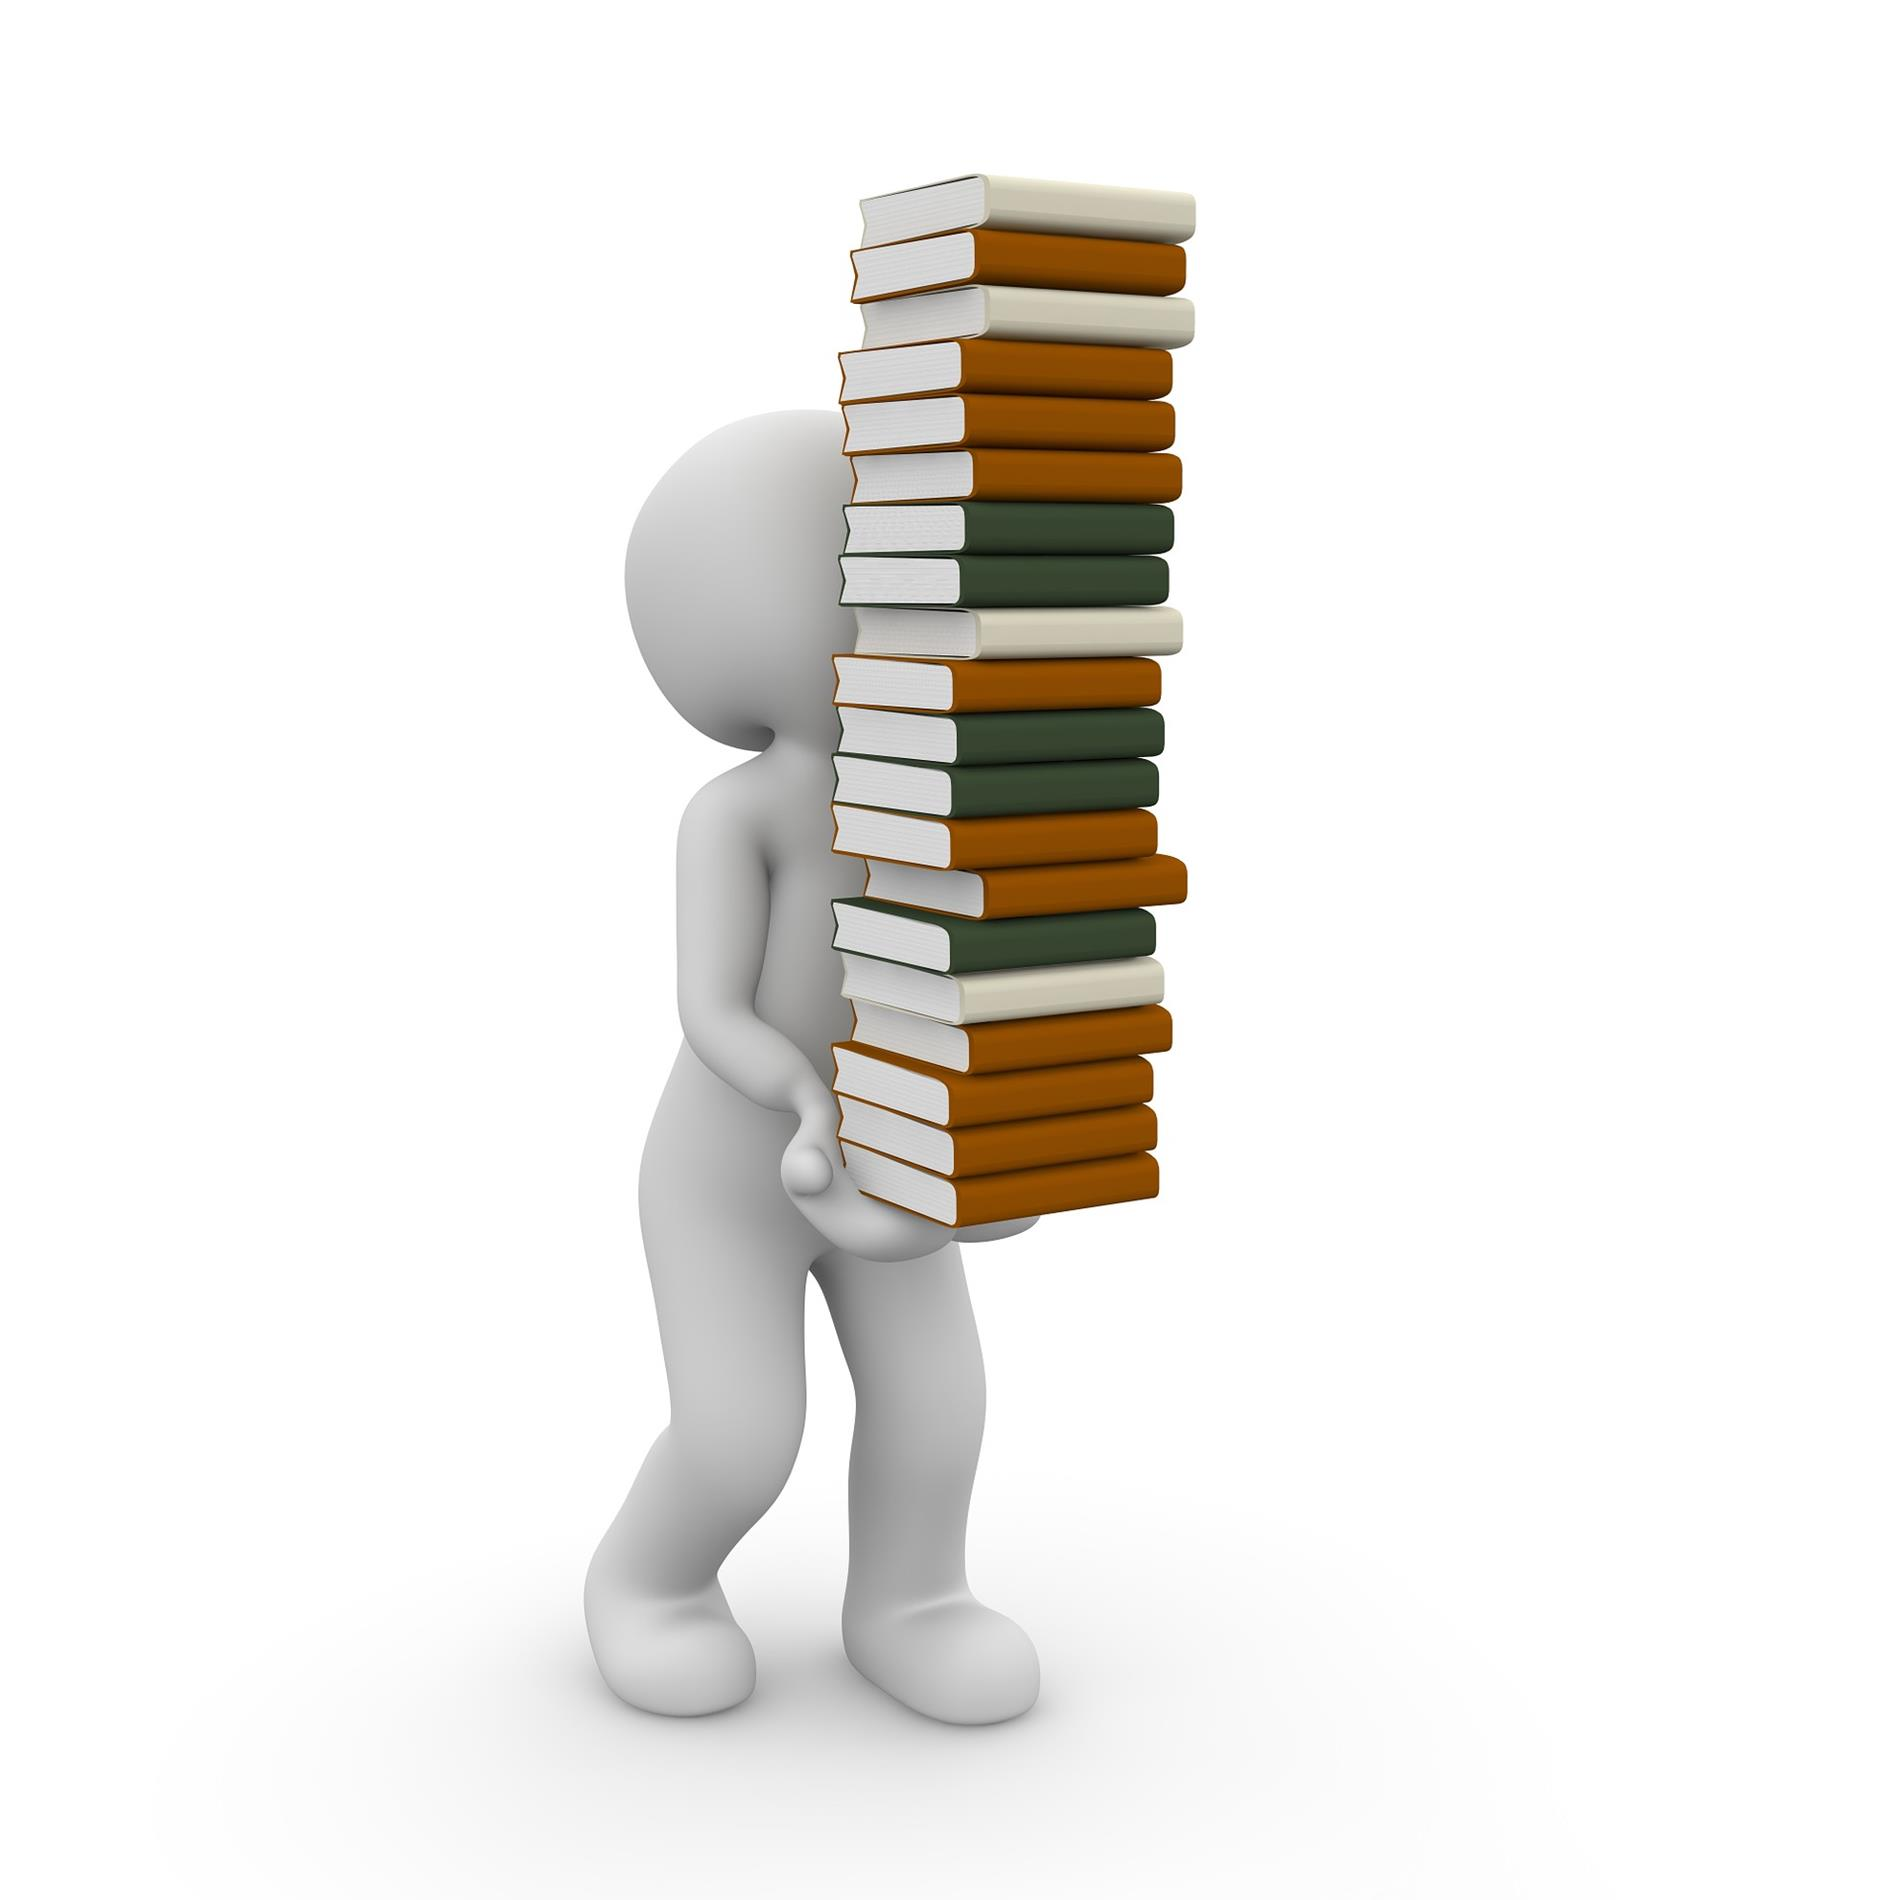 human figure with very tall stack of books